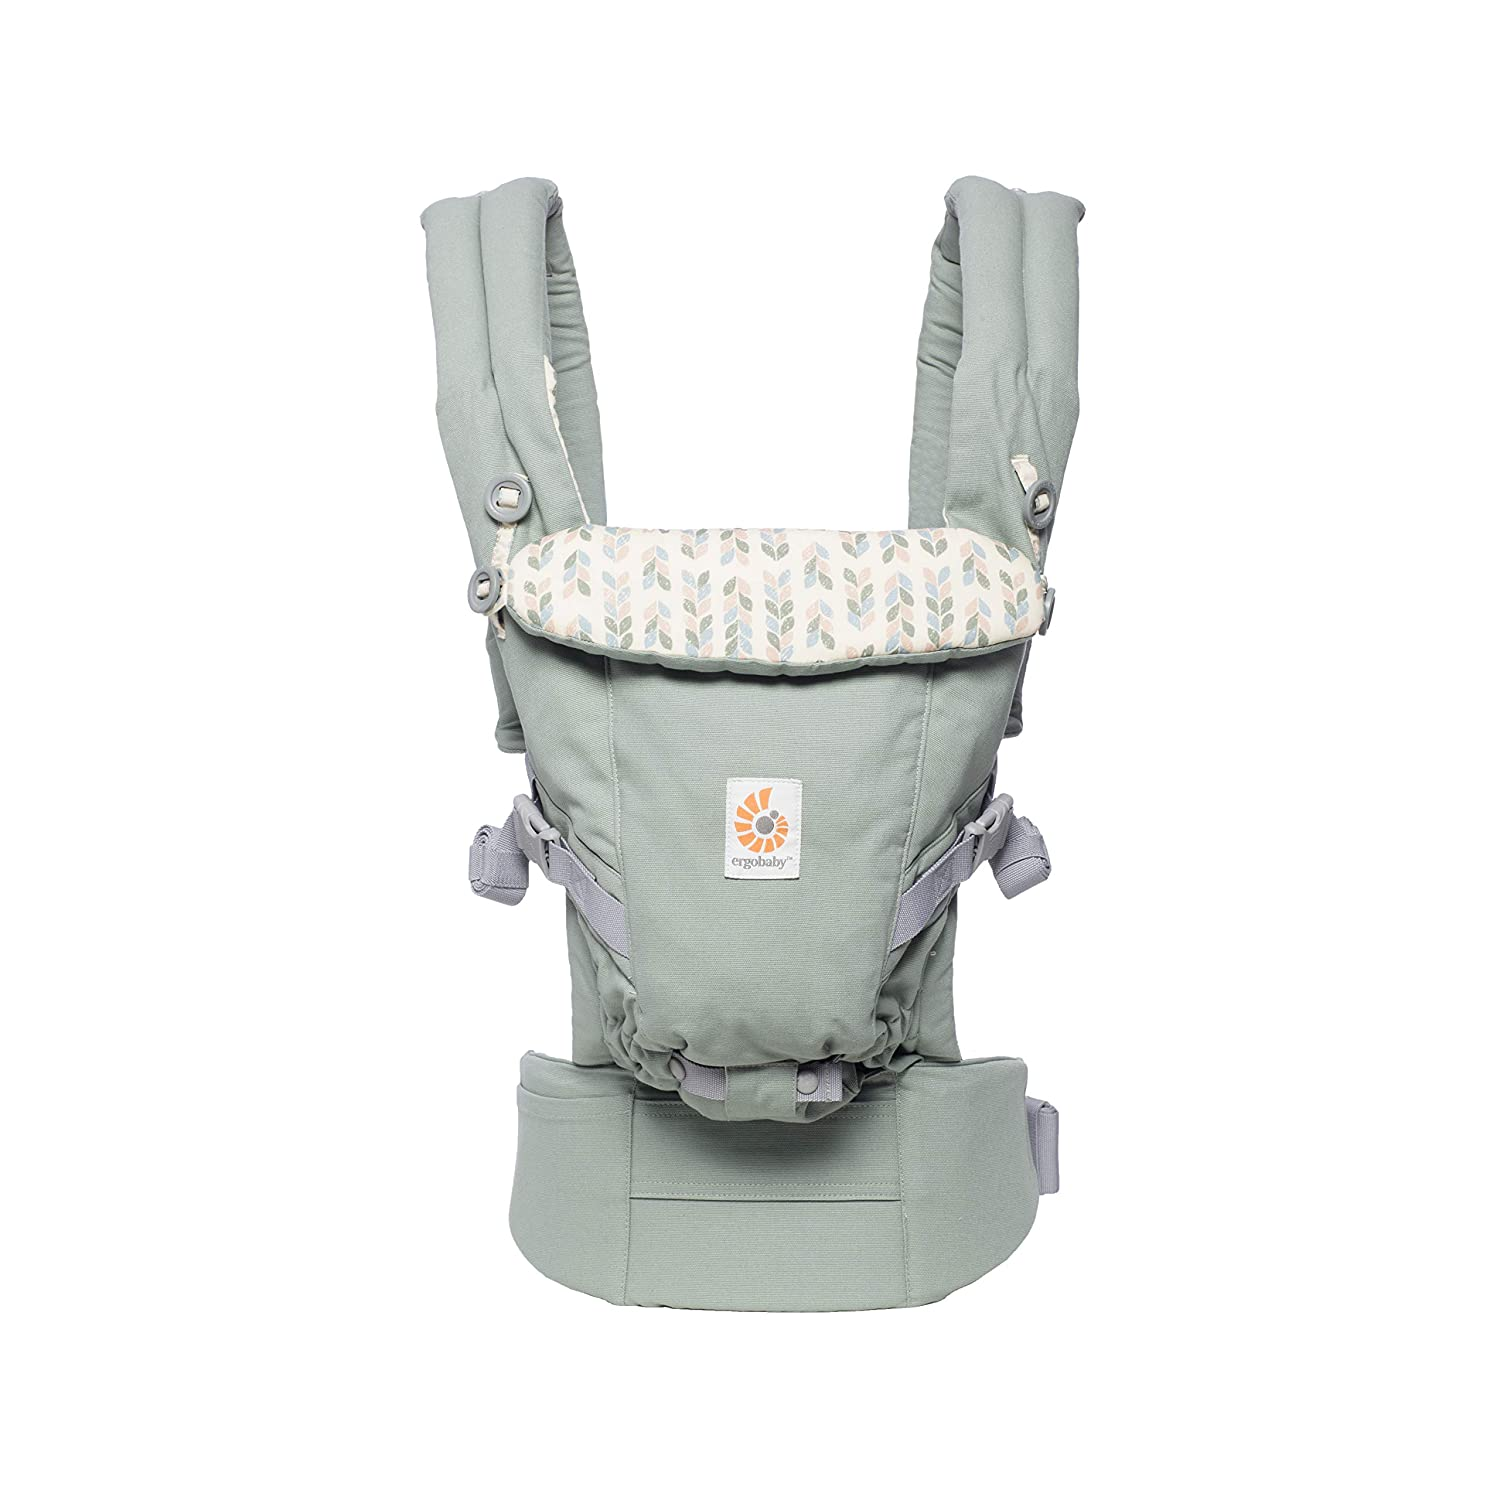 4d73a7a2061 Ergobaby Baby Carrier for New-Born Sage  Amazon.co.uk  Baby